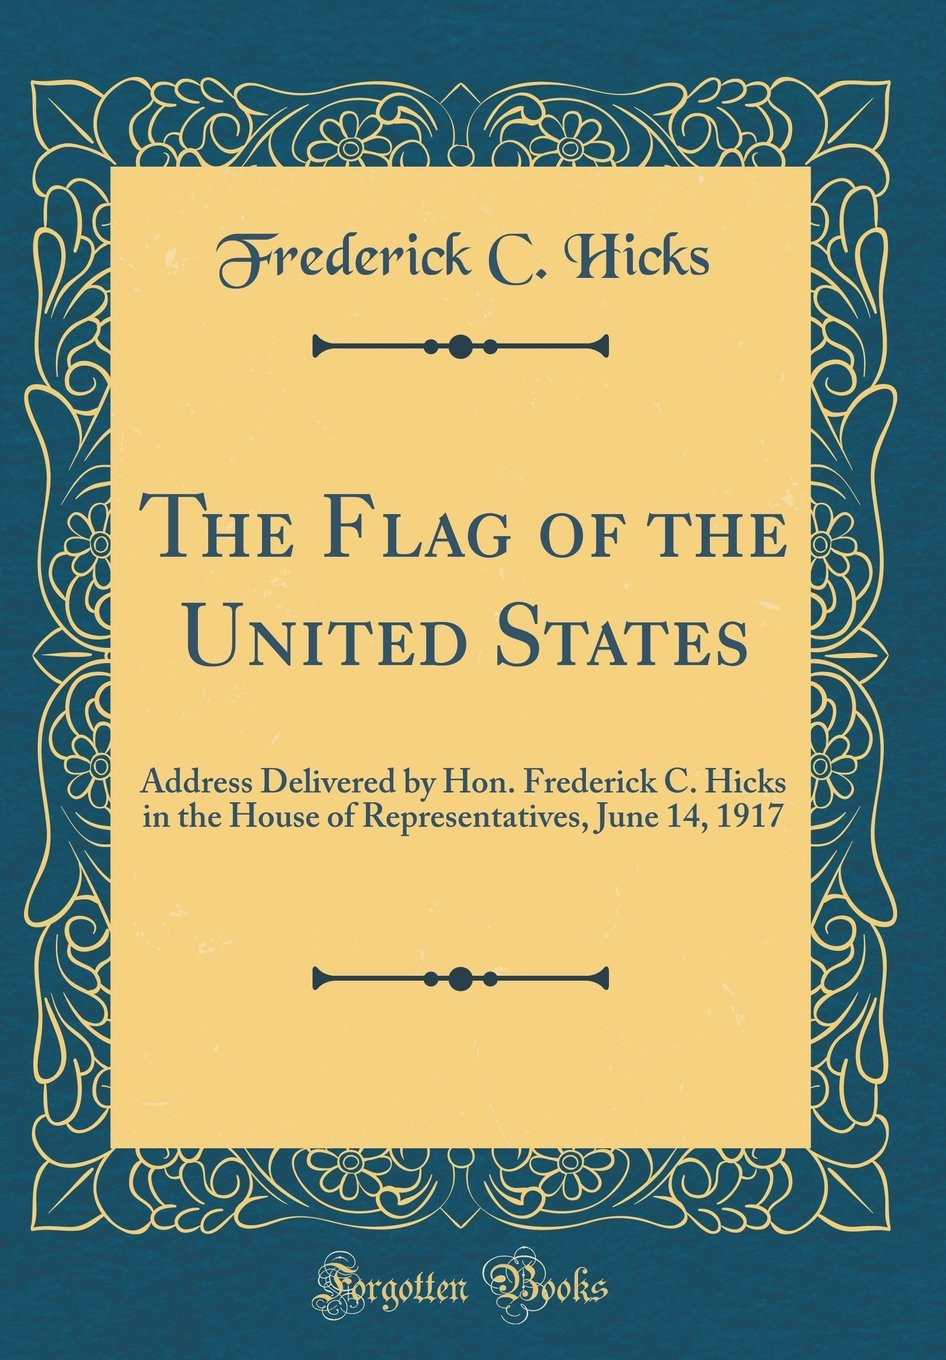 The Flag of the United States: Address Delivered by Hon. Frederick C. Hicks in the House of Representatives, June 14, 1917 (Classic Reprint) PDF